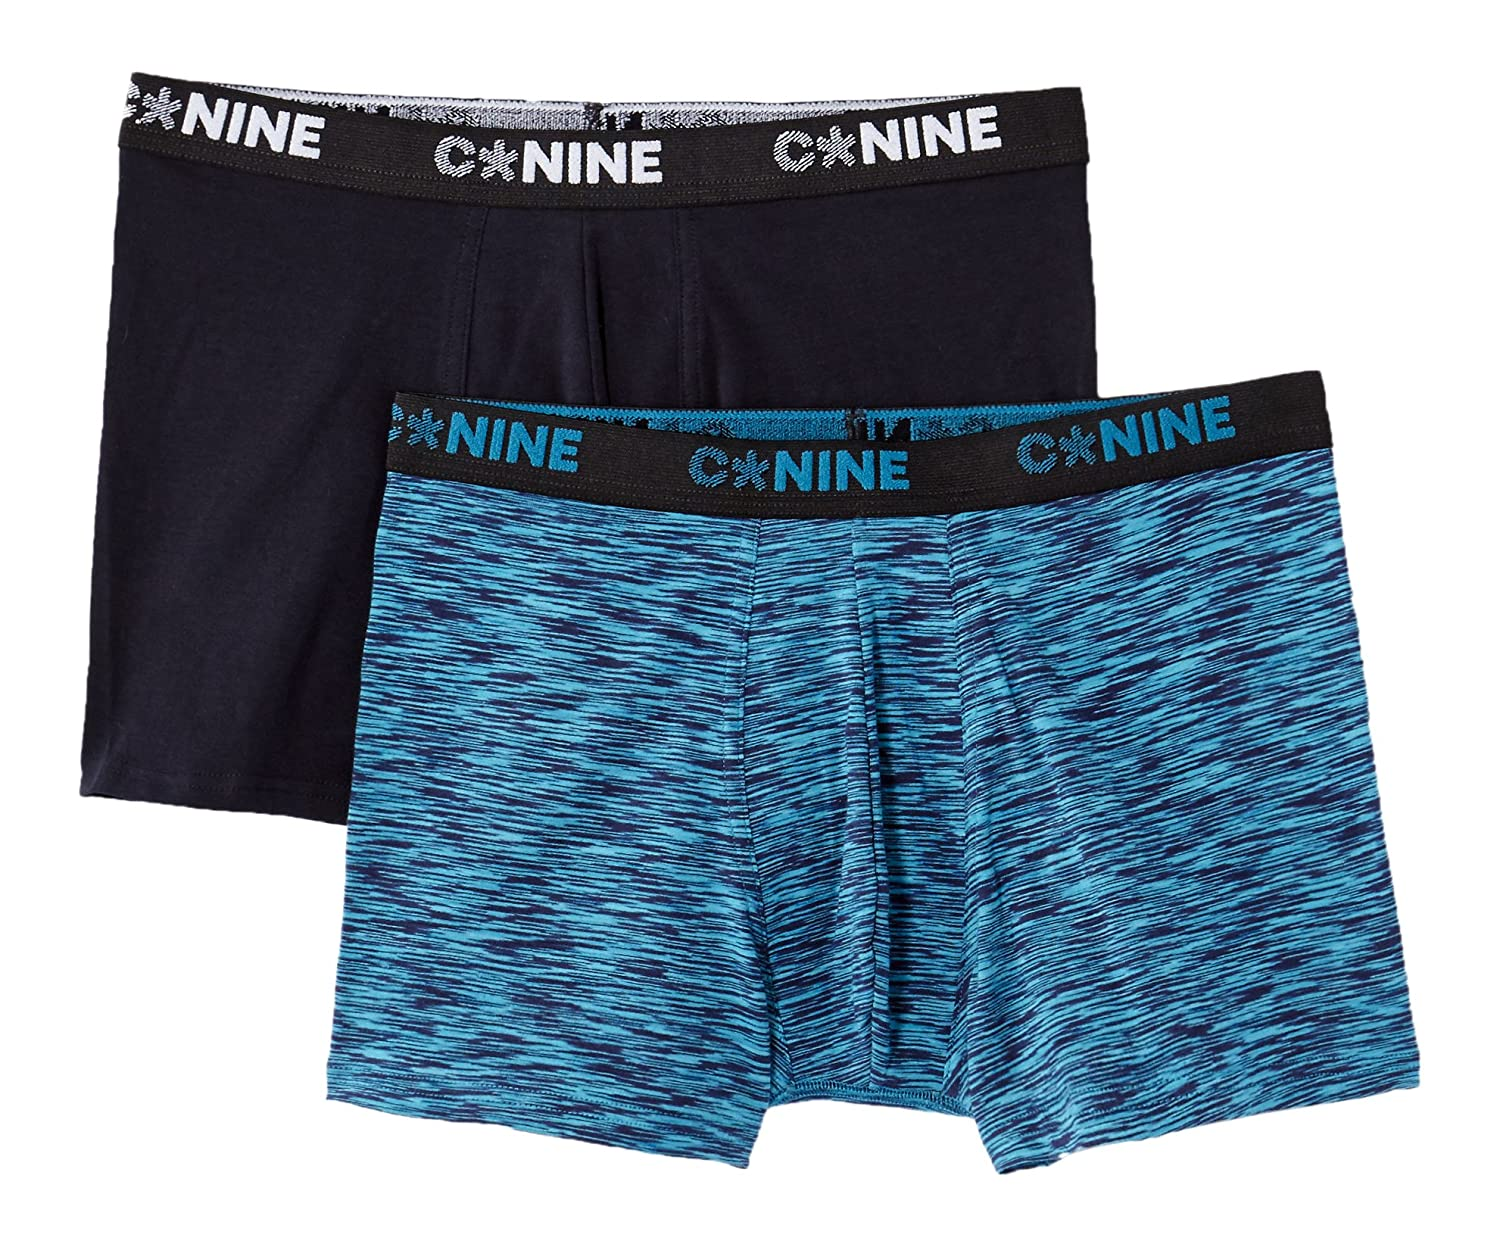 Mens CNINE2 Boy Short Celio Cheap Big Discount PPl8w8s7MP